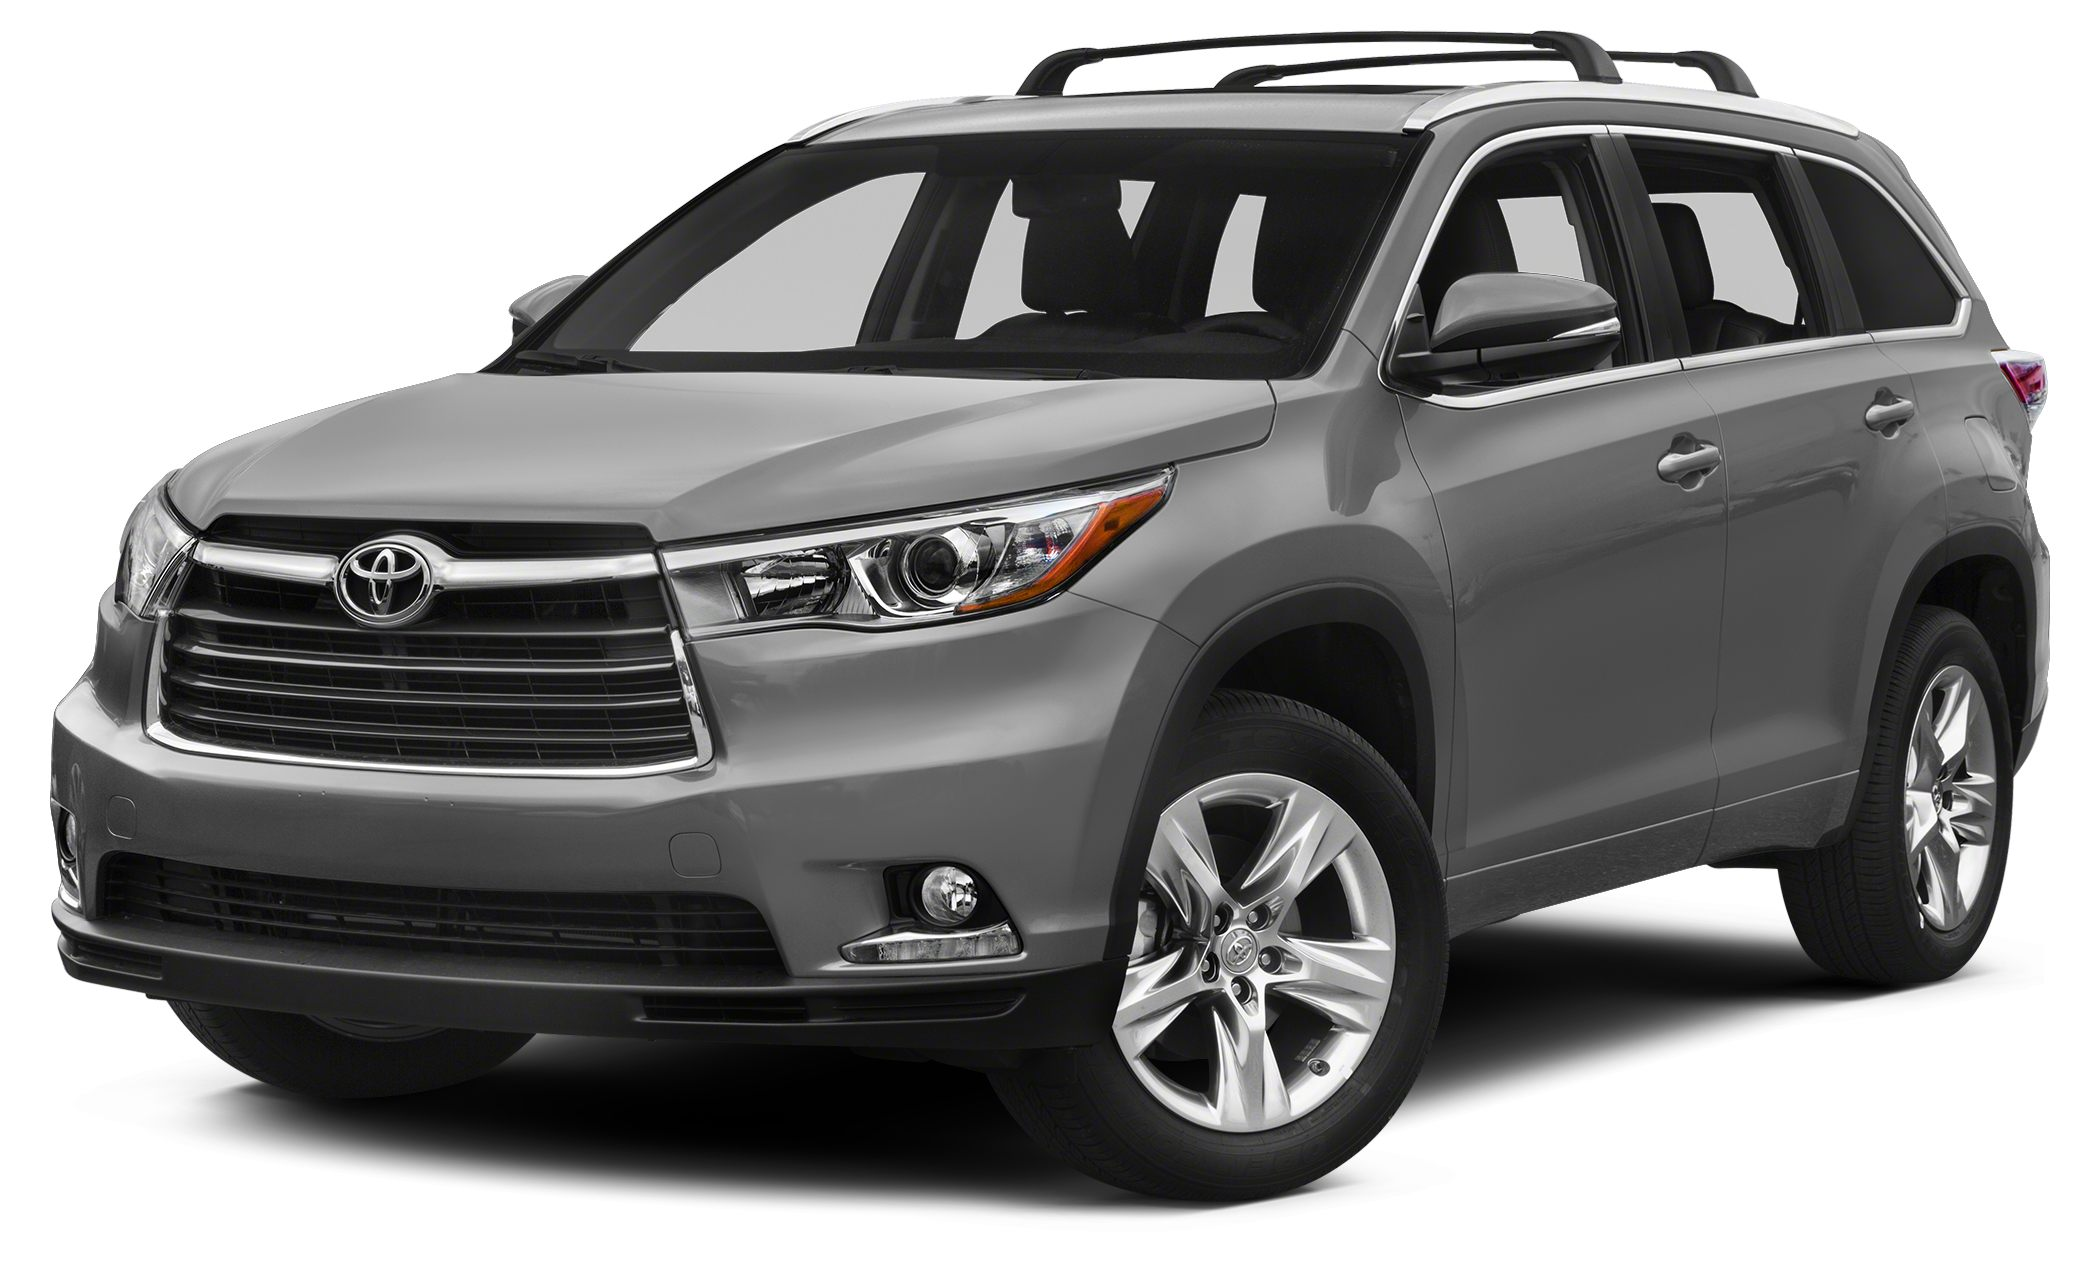 2015 Toyota Highlander Limited Miles 6693Color Silver Stock T25593 VIN 5TDDKRFH2FS083045